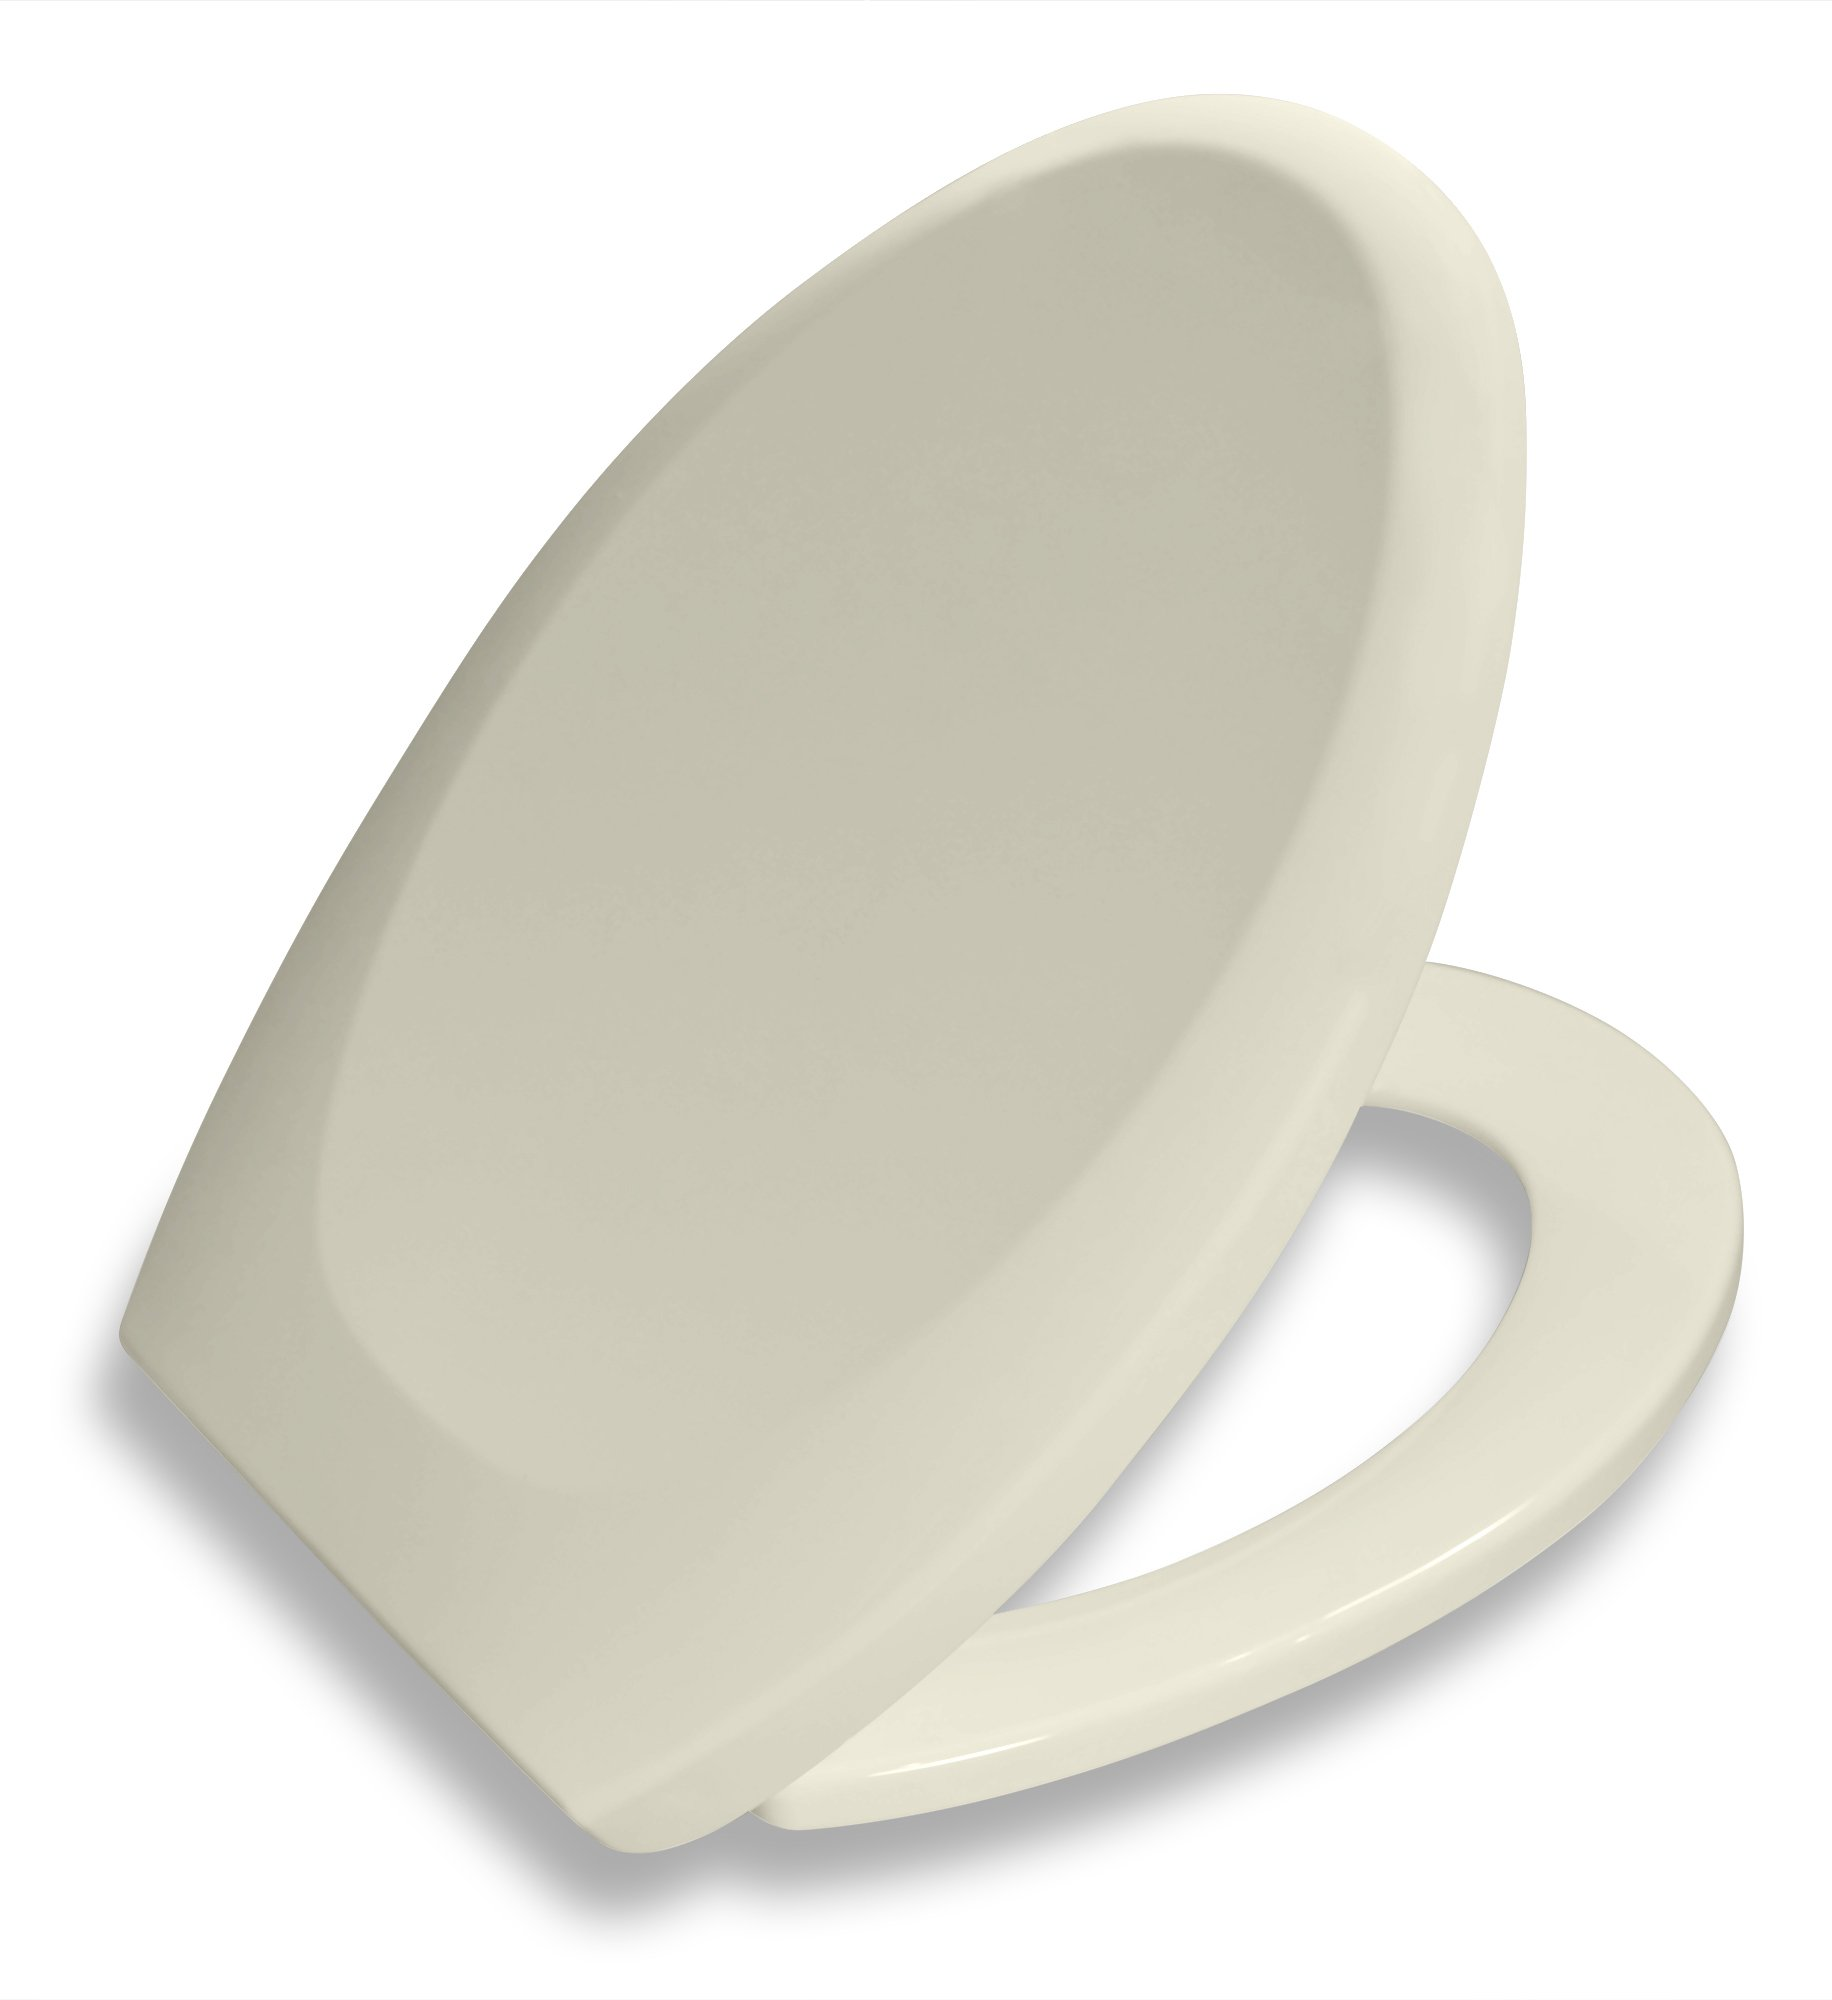 Bath Royale Premium Elongated Toilet Seat with Cover, Almond-Bone, Slow-Close, Quick-Release for Easy Cleaning. Fits All Elongated (Oval) Toilets